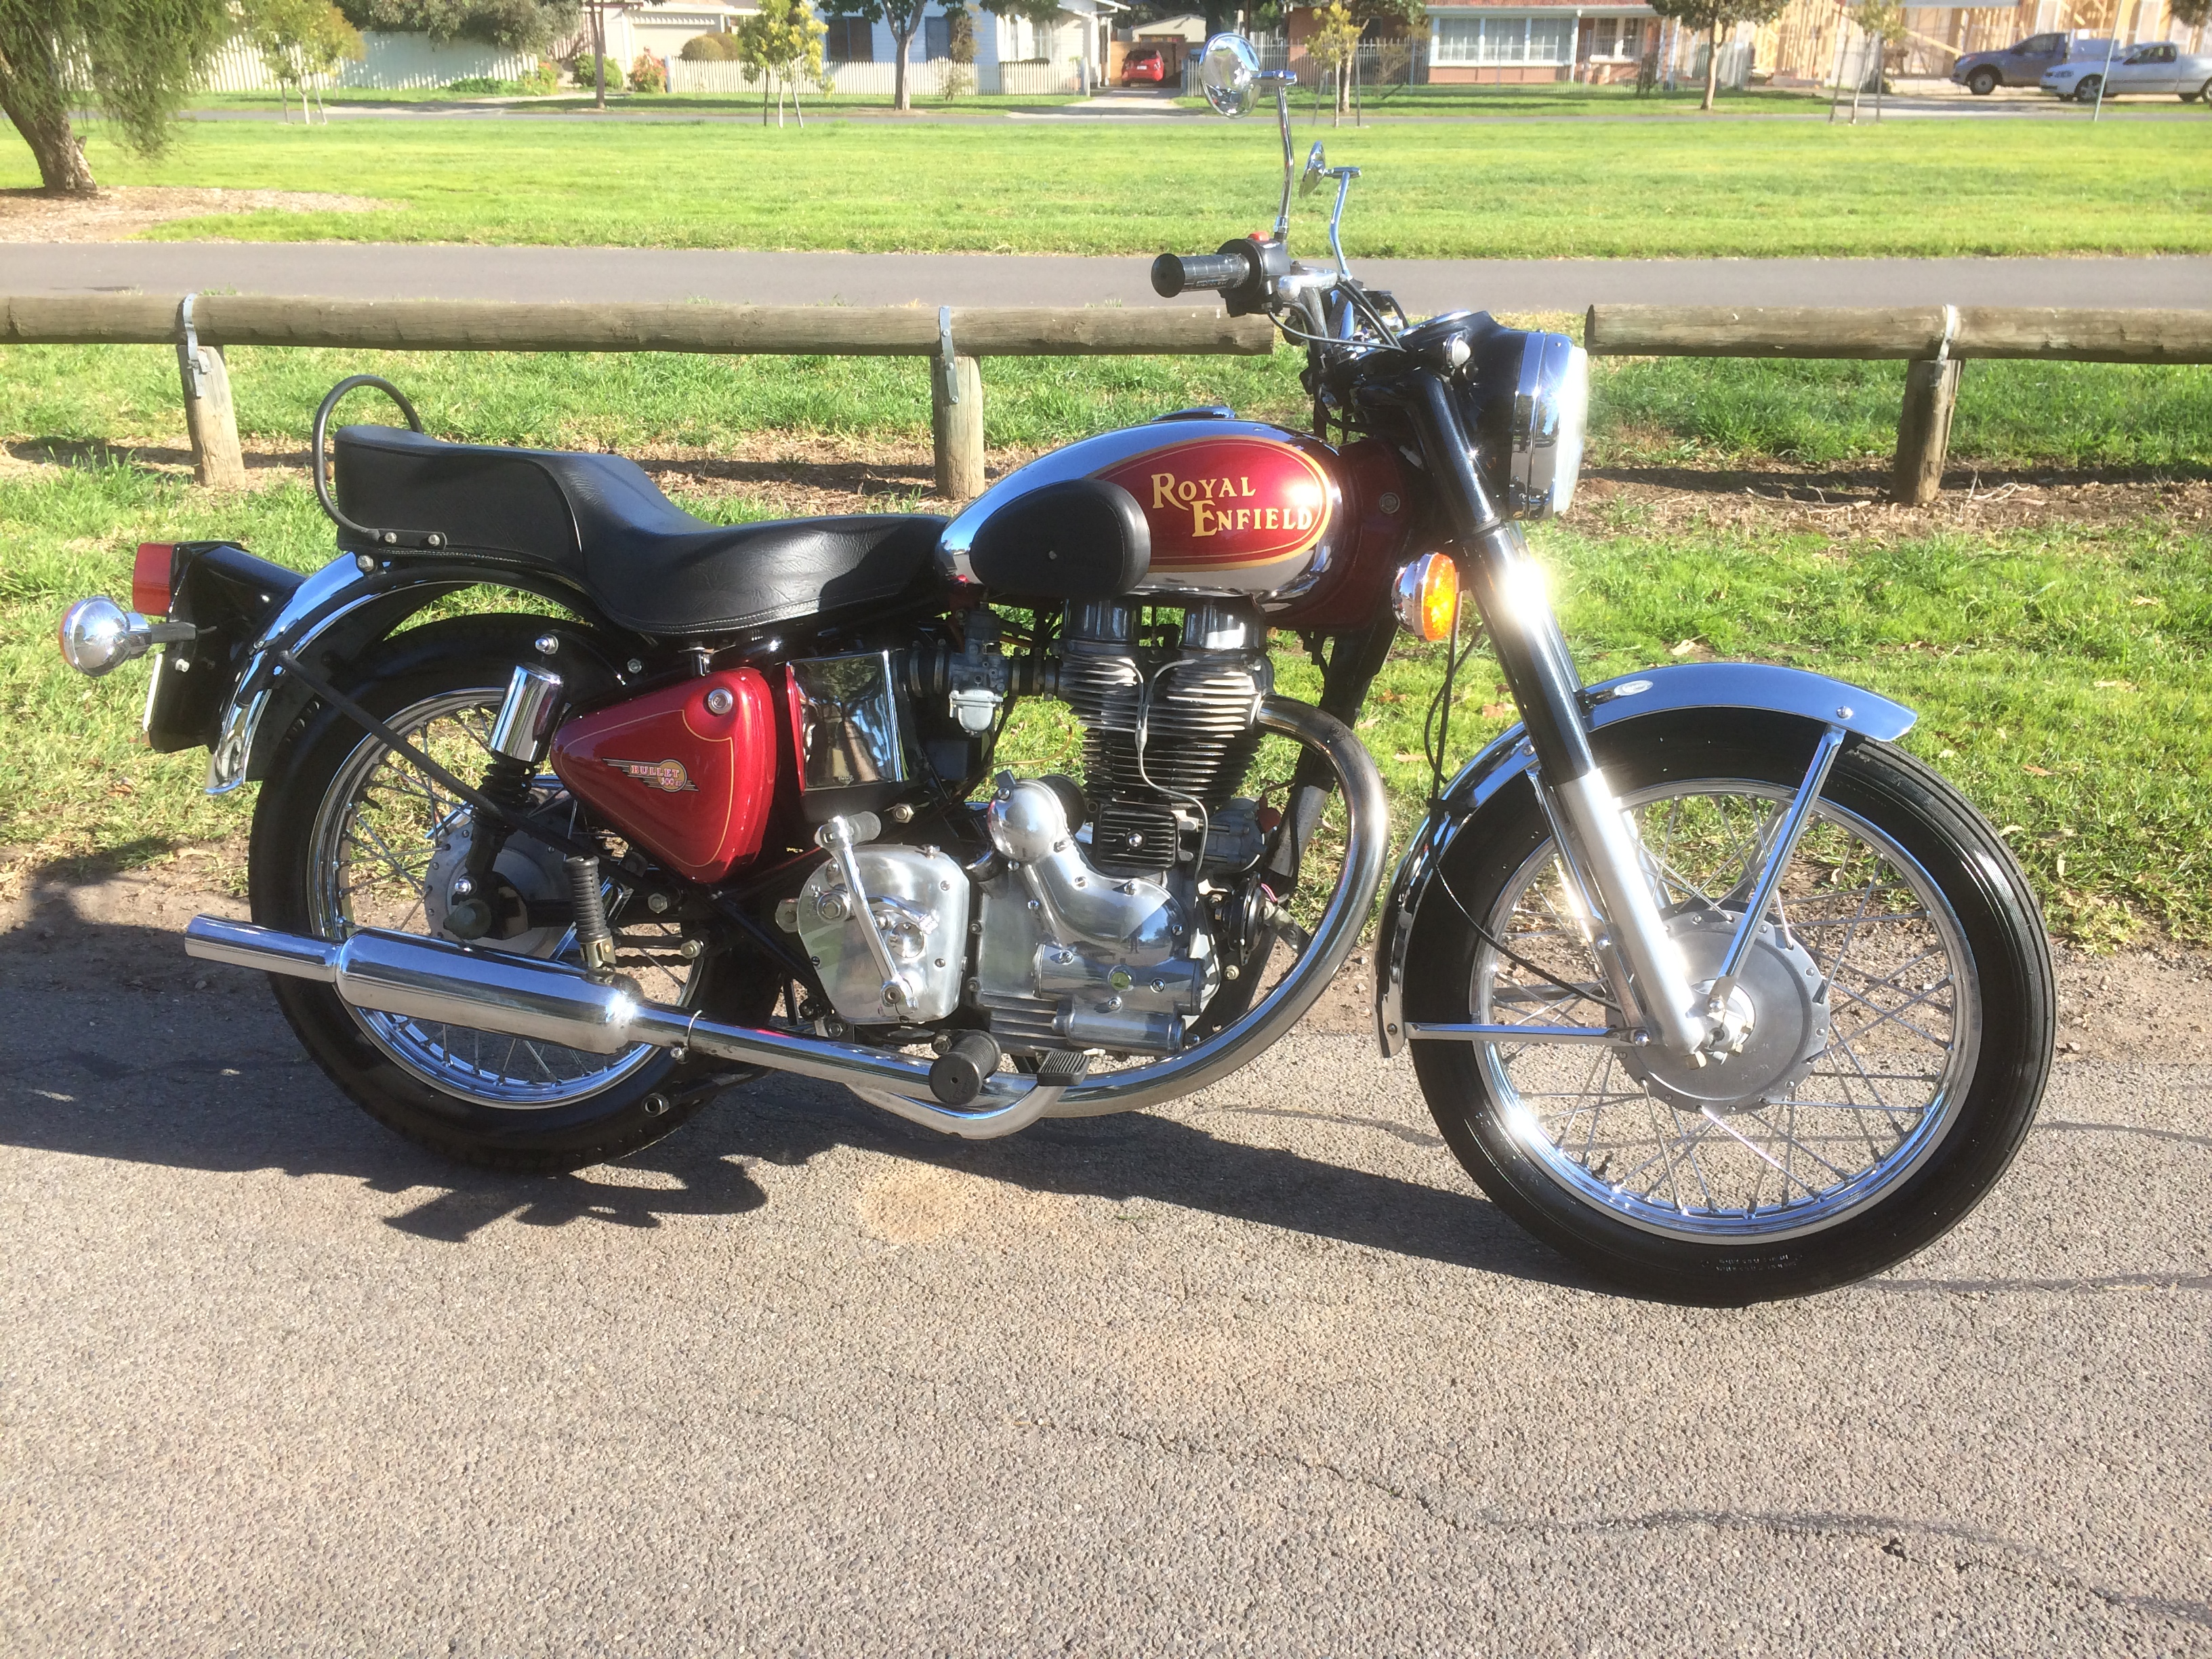 Royal Enfield Bullet G5 Classic EFI images #127320